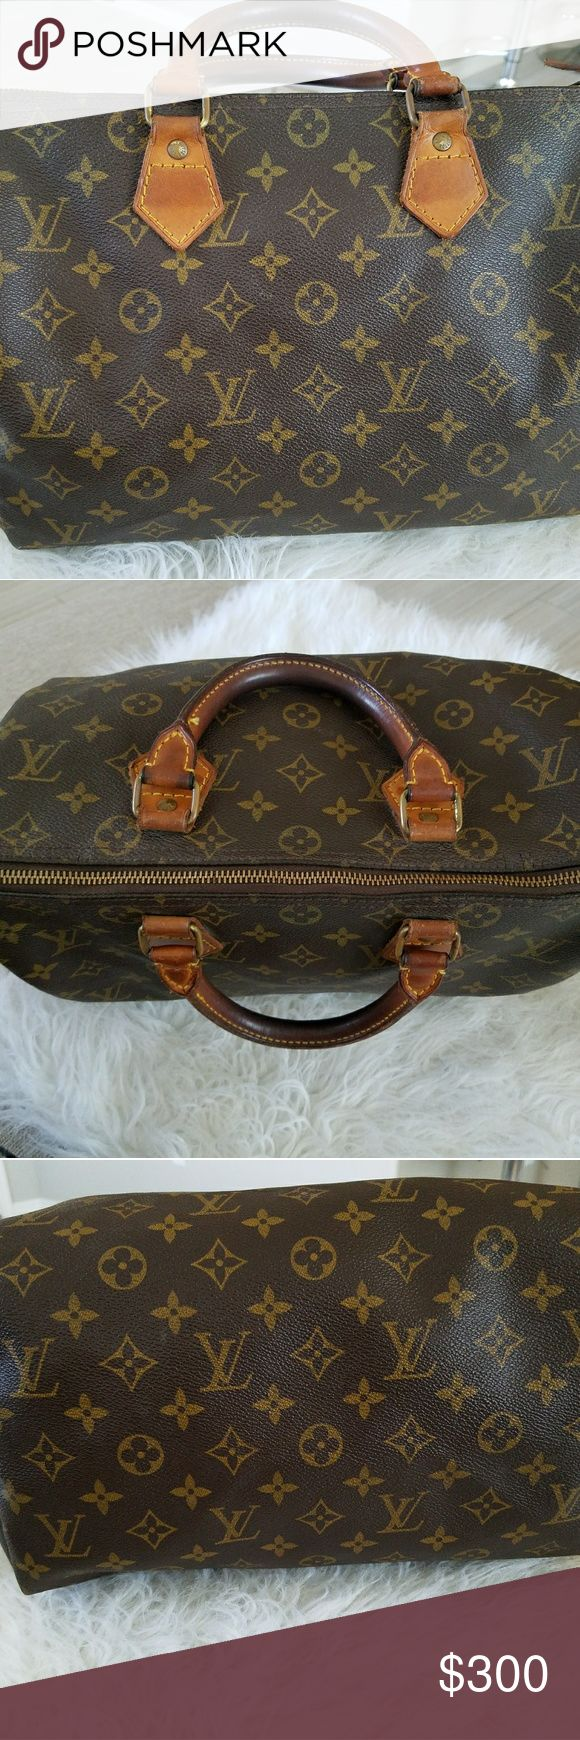 "Louis Vuitton speedy 30 monogram Brown and tan monogram coated canvas Louis Vuitton Speedy 30 with brass hardware, tan vachetta leather trim, dual rolled handles, brown canvas lining, single slit pocket at interior wall and zip closure at top. *Lock with no key, lock code reads 303; Date code reads 882 FC= made in the US Feb. 1986 This in good used condition. No scratches, no fading, inside needs to be cleaned from use.  Handle Drop: 3.25"" Height: 10"" Width: 12"" Depth: 7"" Louis Vuitton Bags"